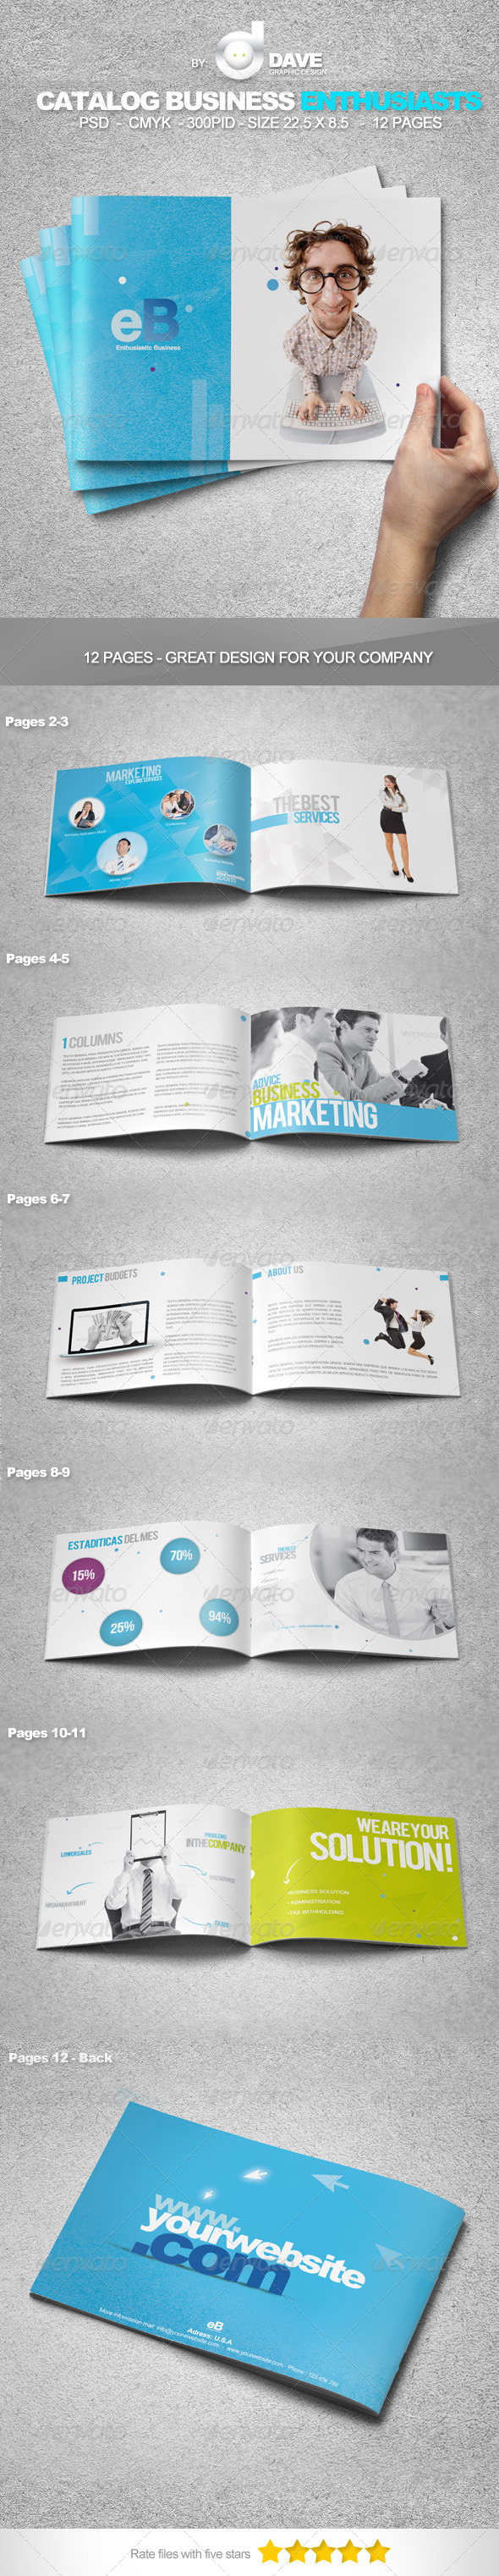 GraphicRiver Catalog Business Enthusiasts 4641341